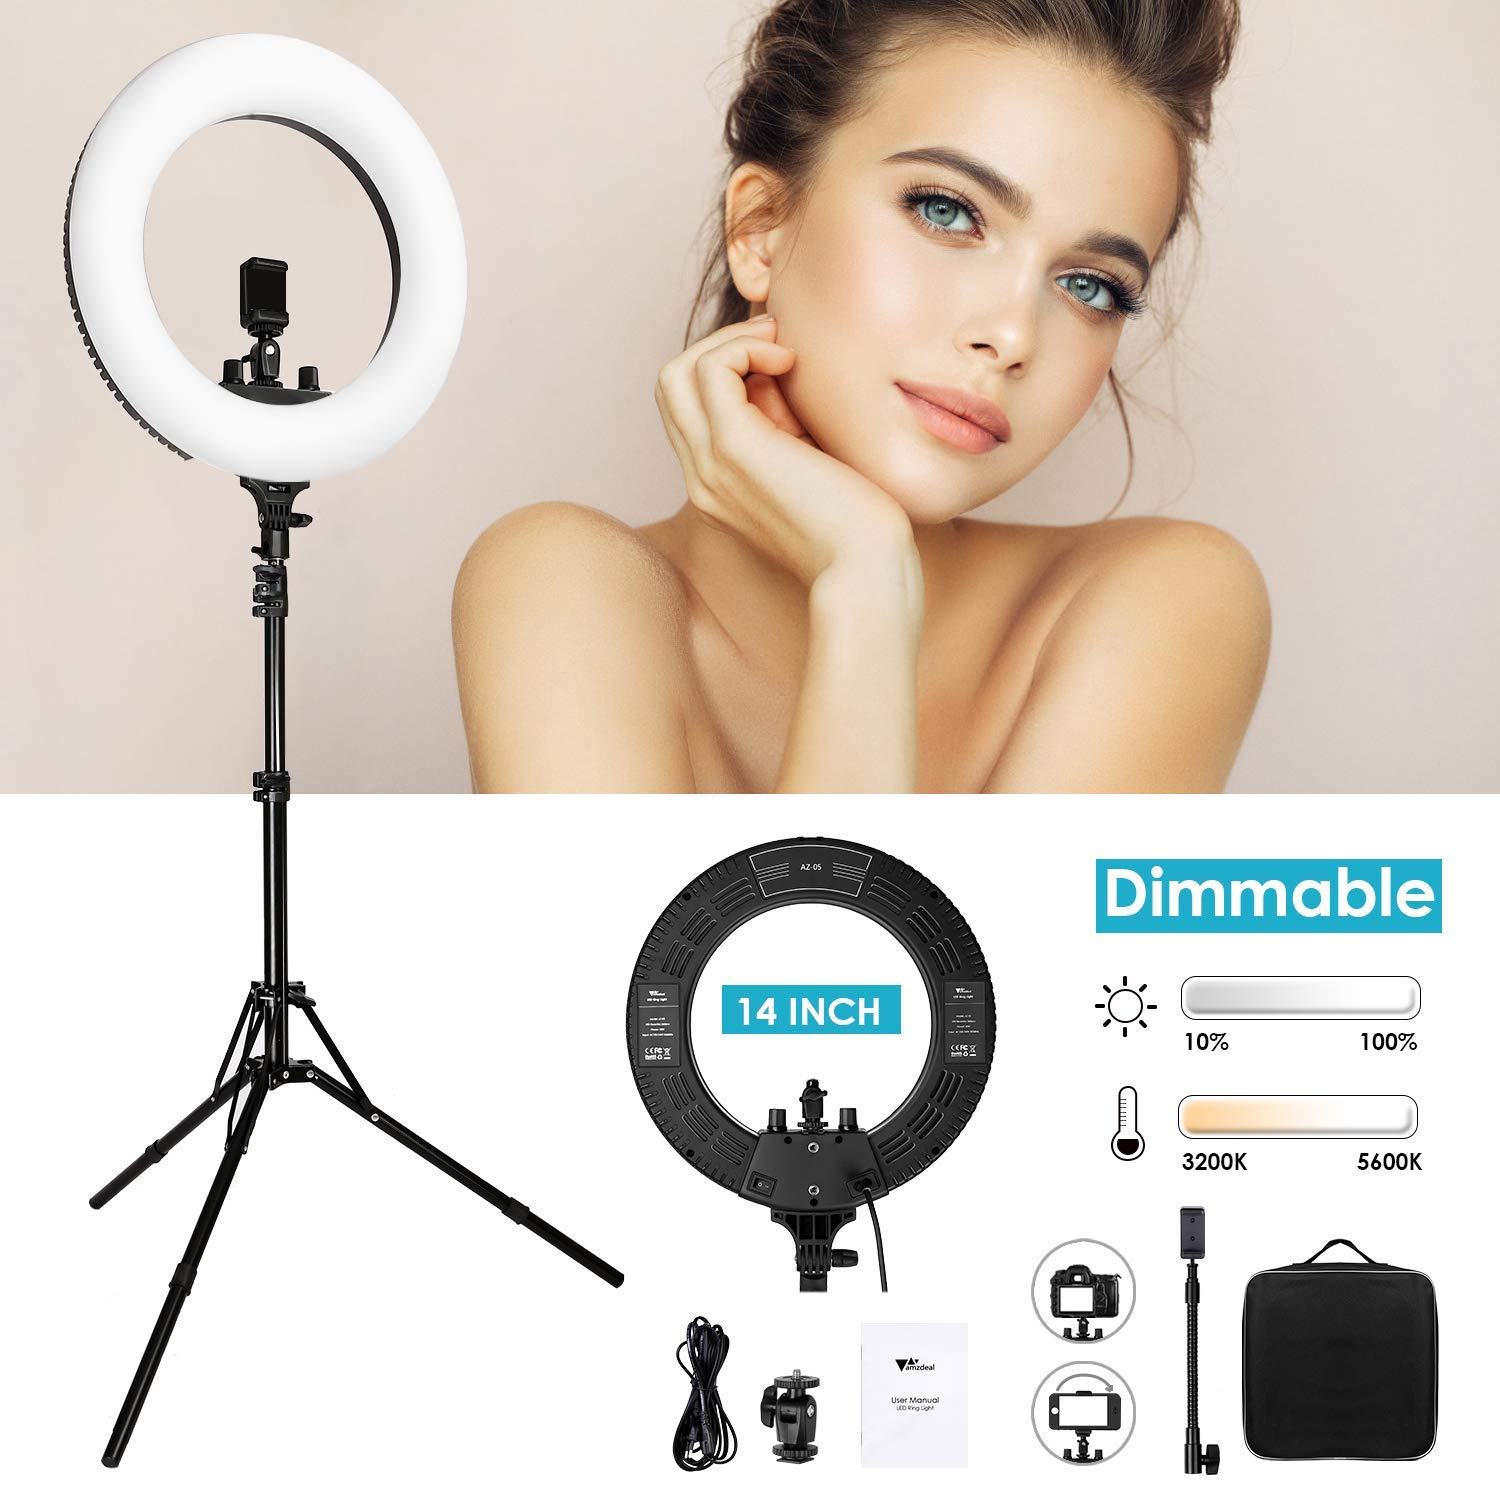 【Upgraded】 Amzdeal Ring Light 14 Inch with Tripod Stand-Continuous Output Lighting Kit Dimmable Selfie Led with Tripod Phone Holder Carrying Bag for Photography/Live Stream/Makeup/YouTube Video by amzdeal